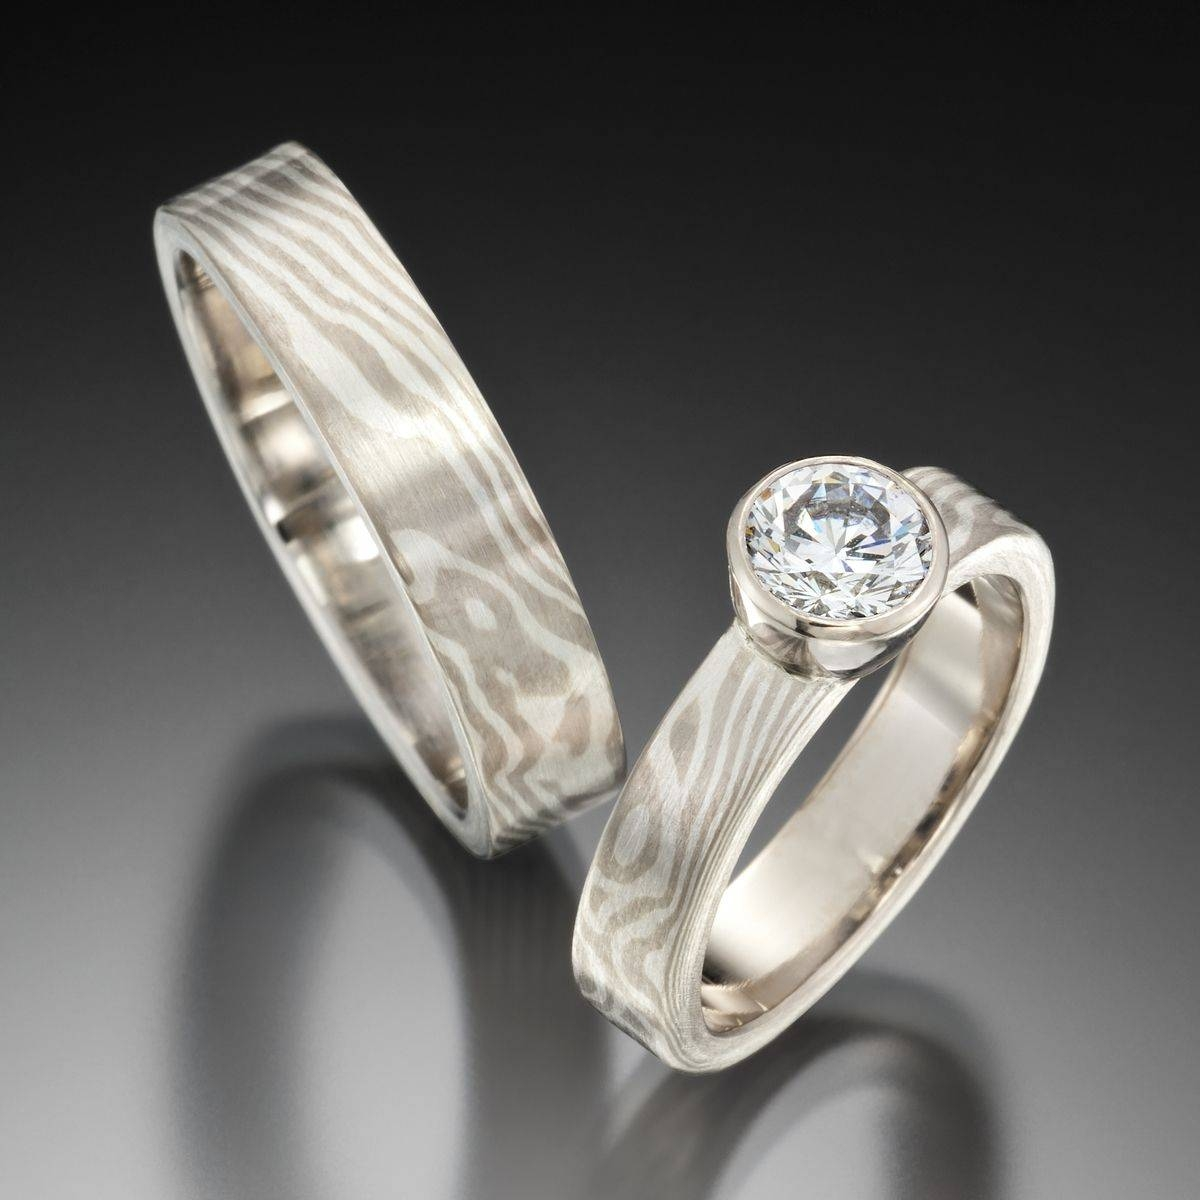 Jenny Reeves: Jenny Reeves | San Francisco, Ca Regarding Mokume Gane Wedding Bands (View 7 of 15)